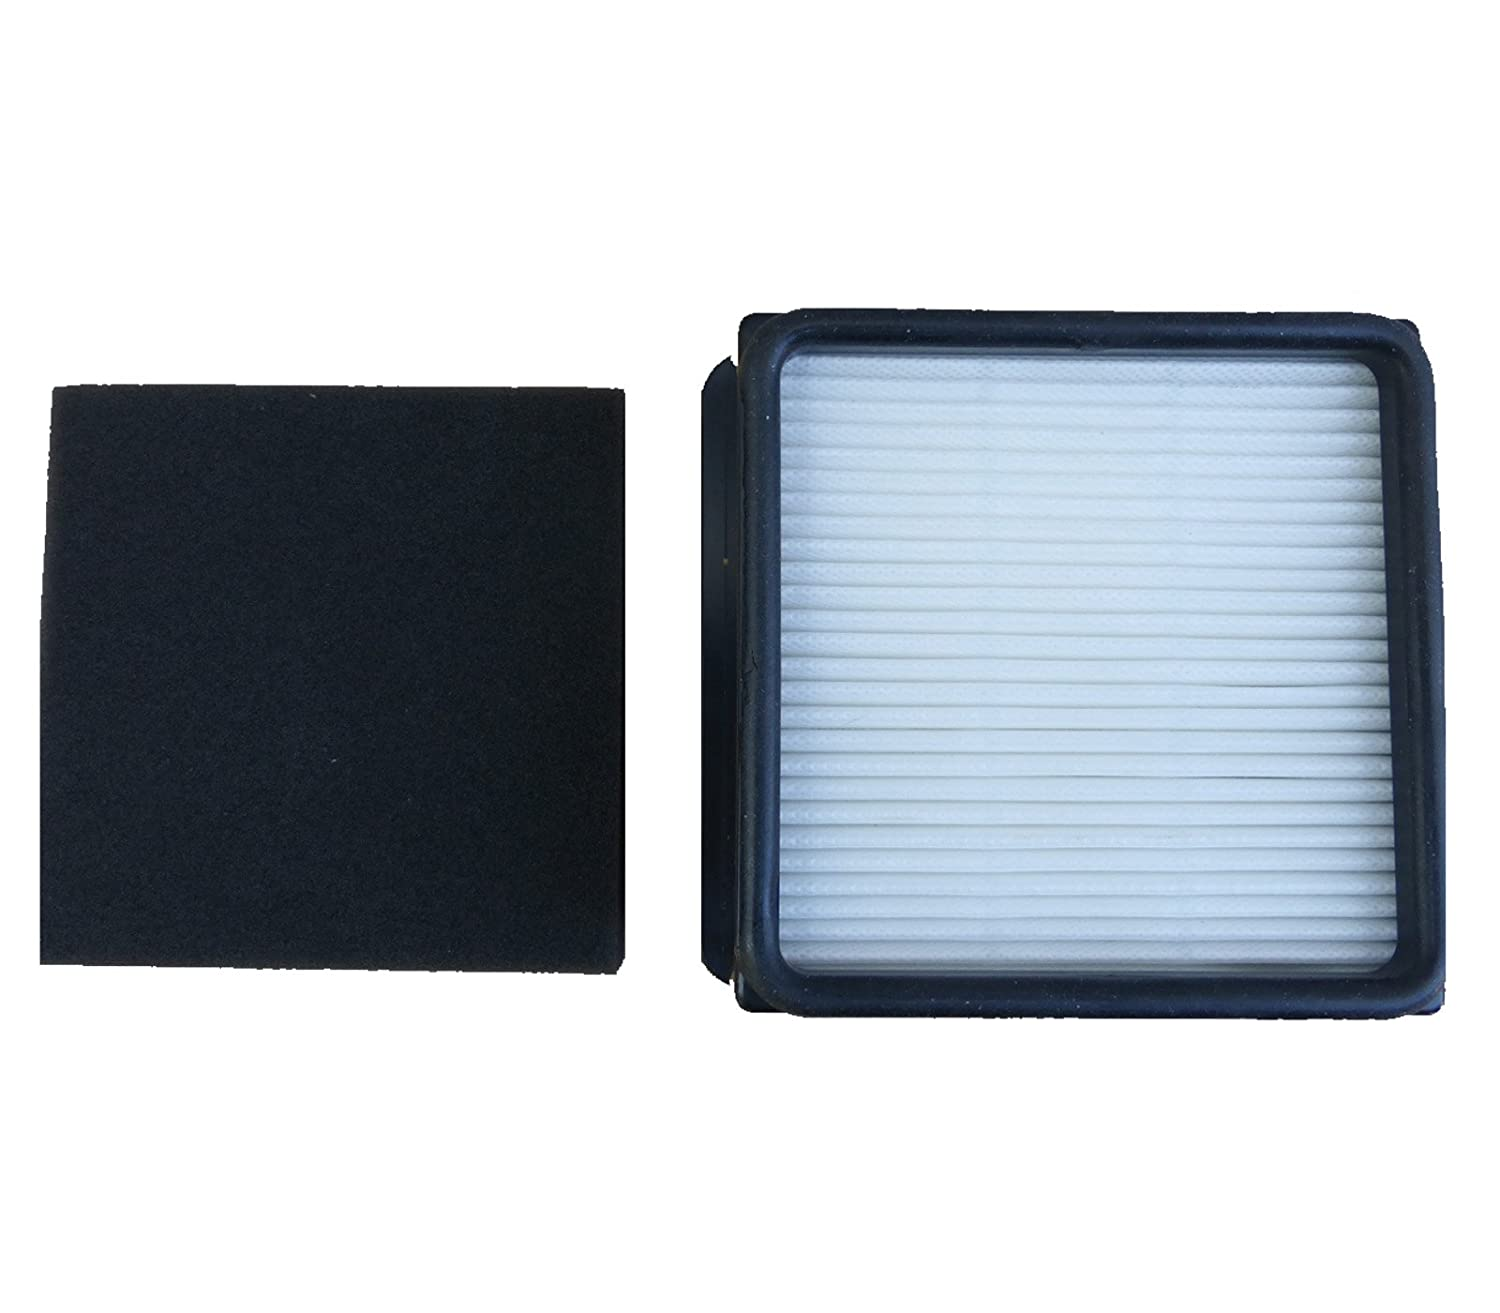 Dirt Devil F66 HEPA Filter and Foam Filter Set For Dirt Devil UD70010 Uprights 304708001